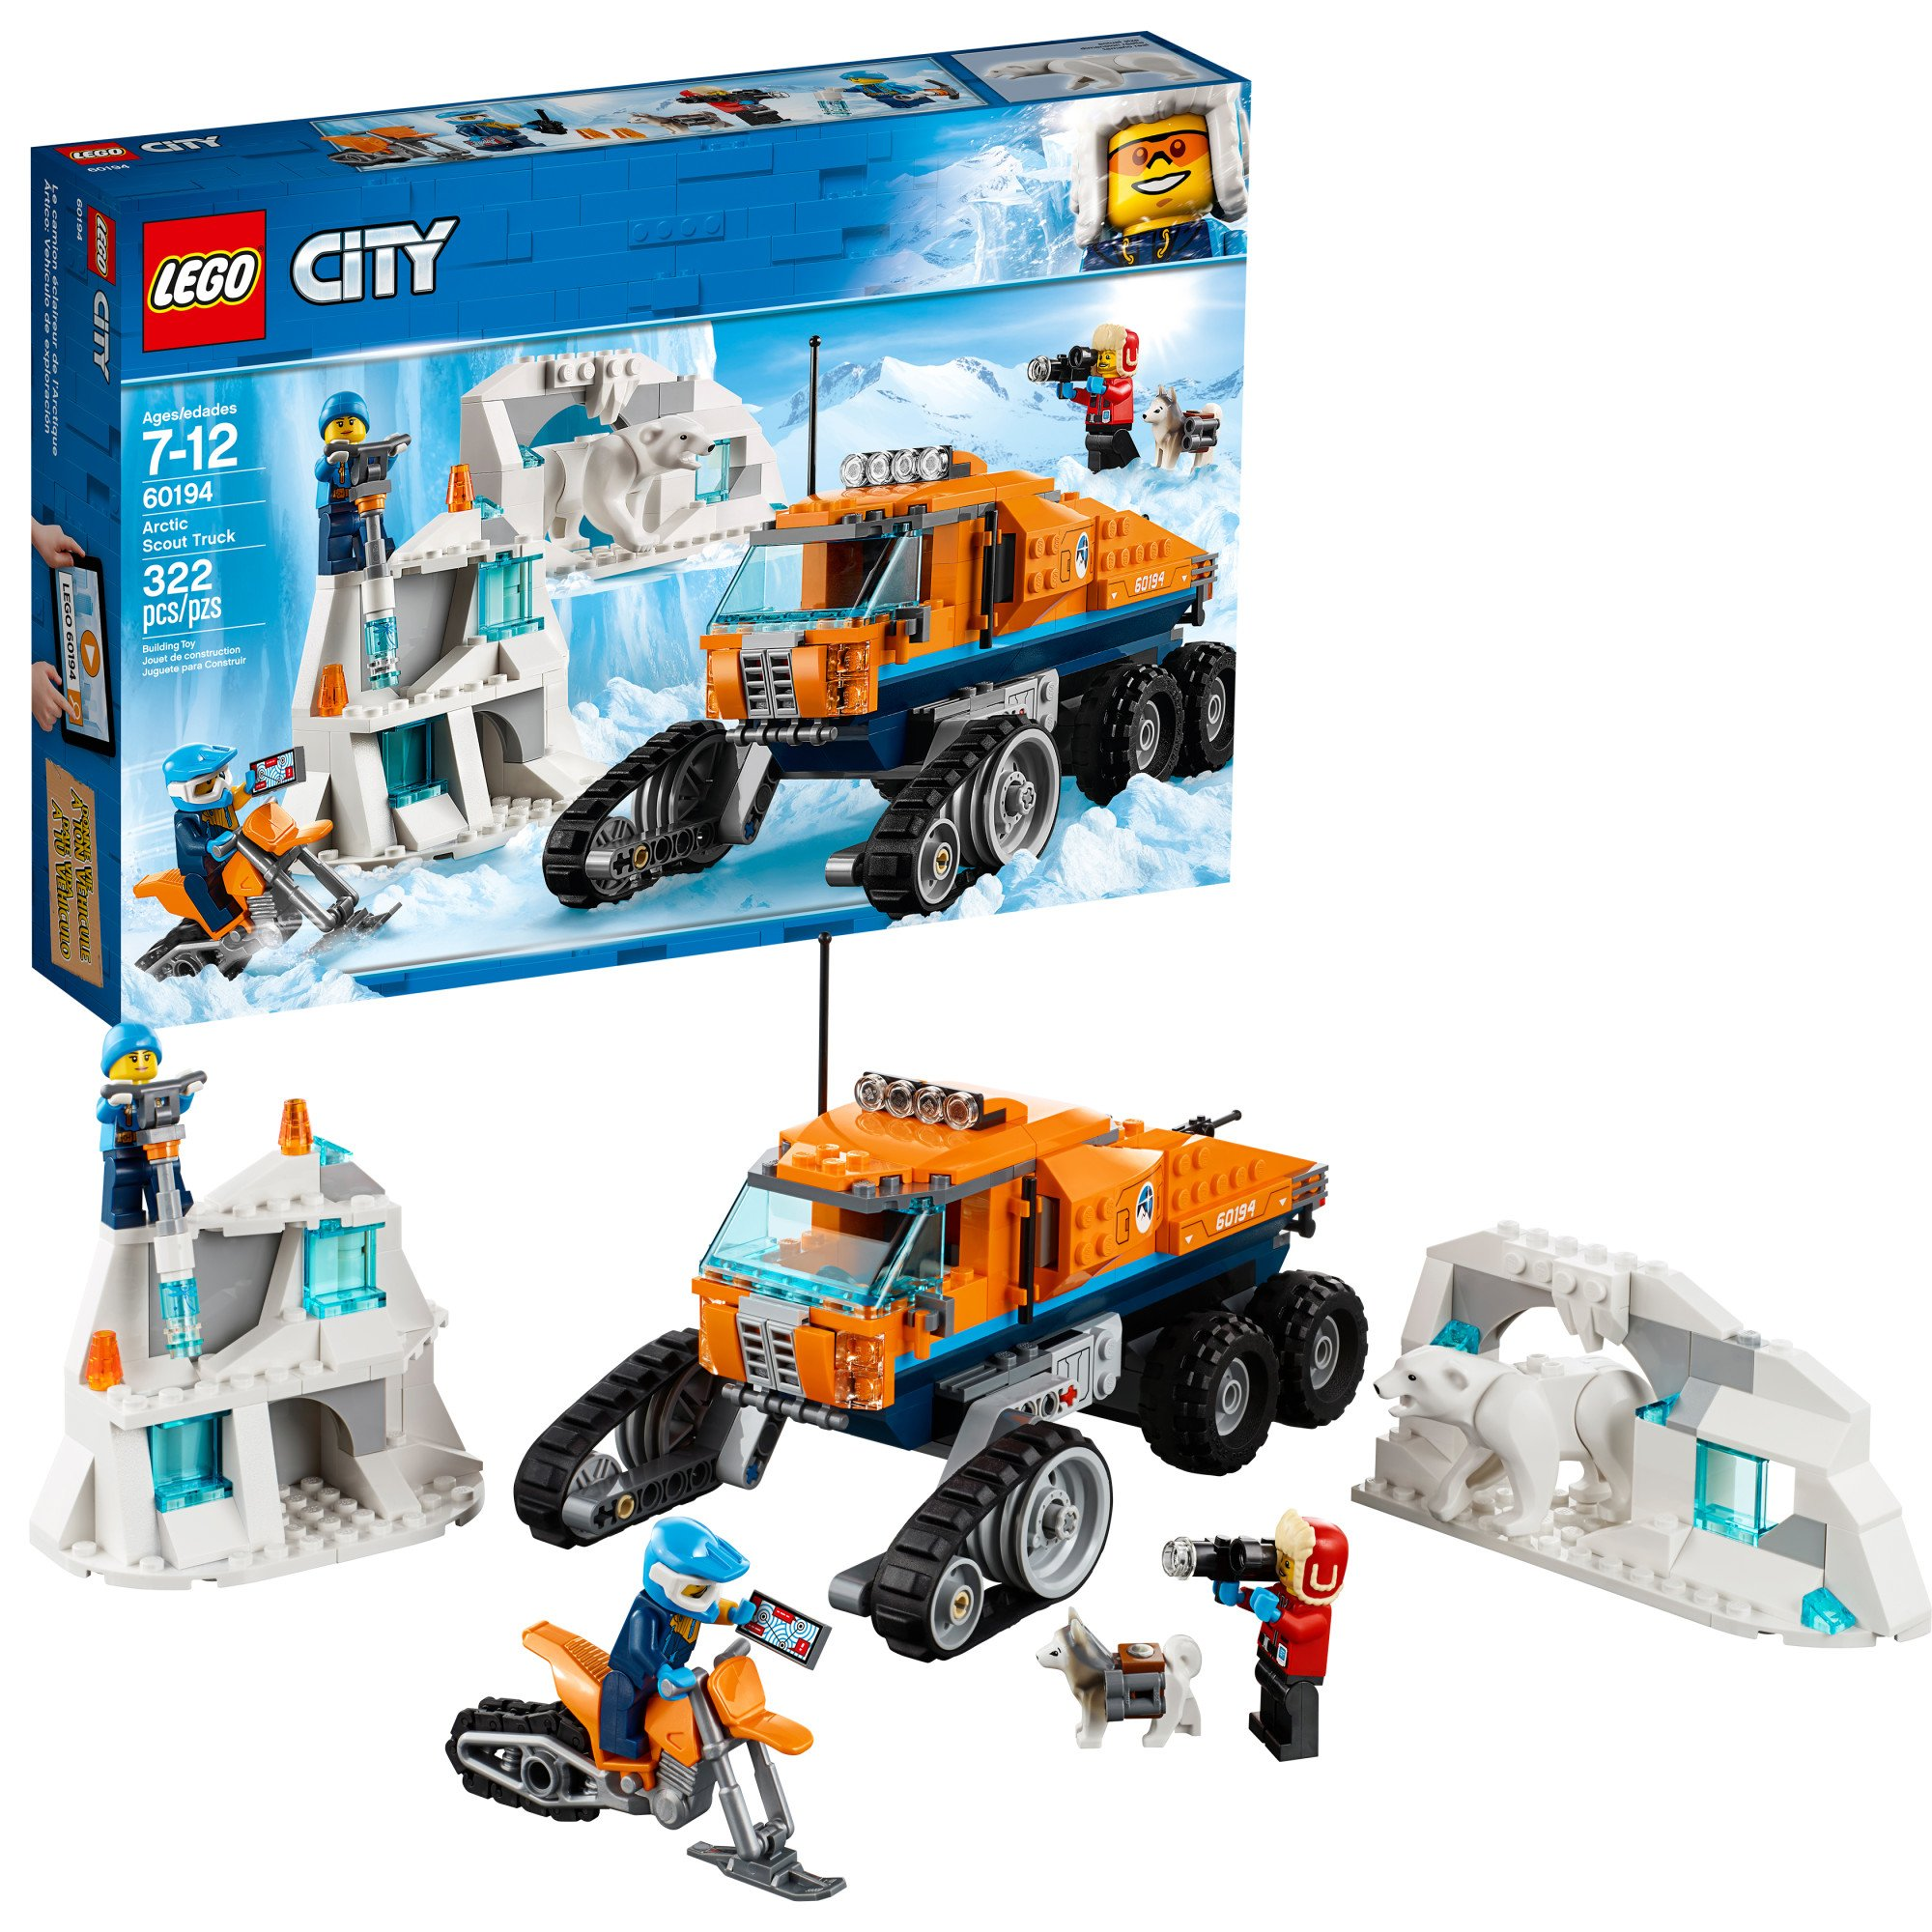 LEGO City Arctic Scout Truck 60194 Building Kit (322 Pieces) by LEGO